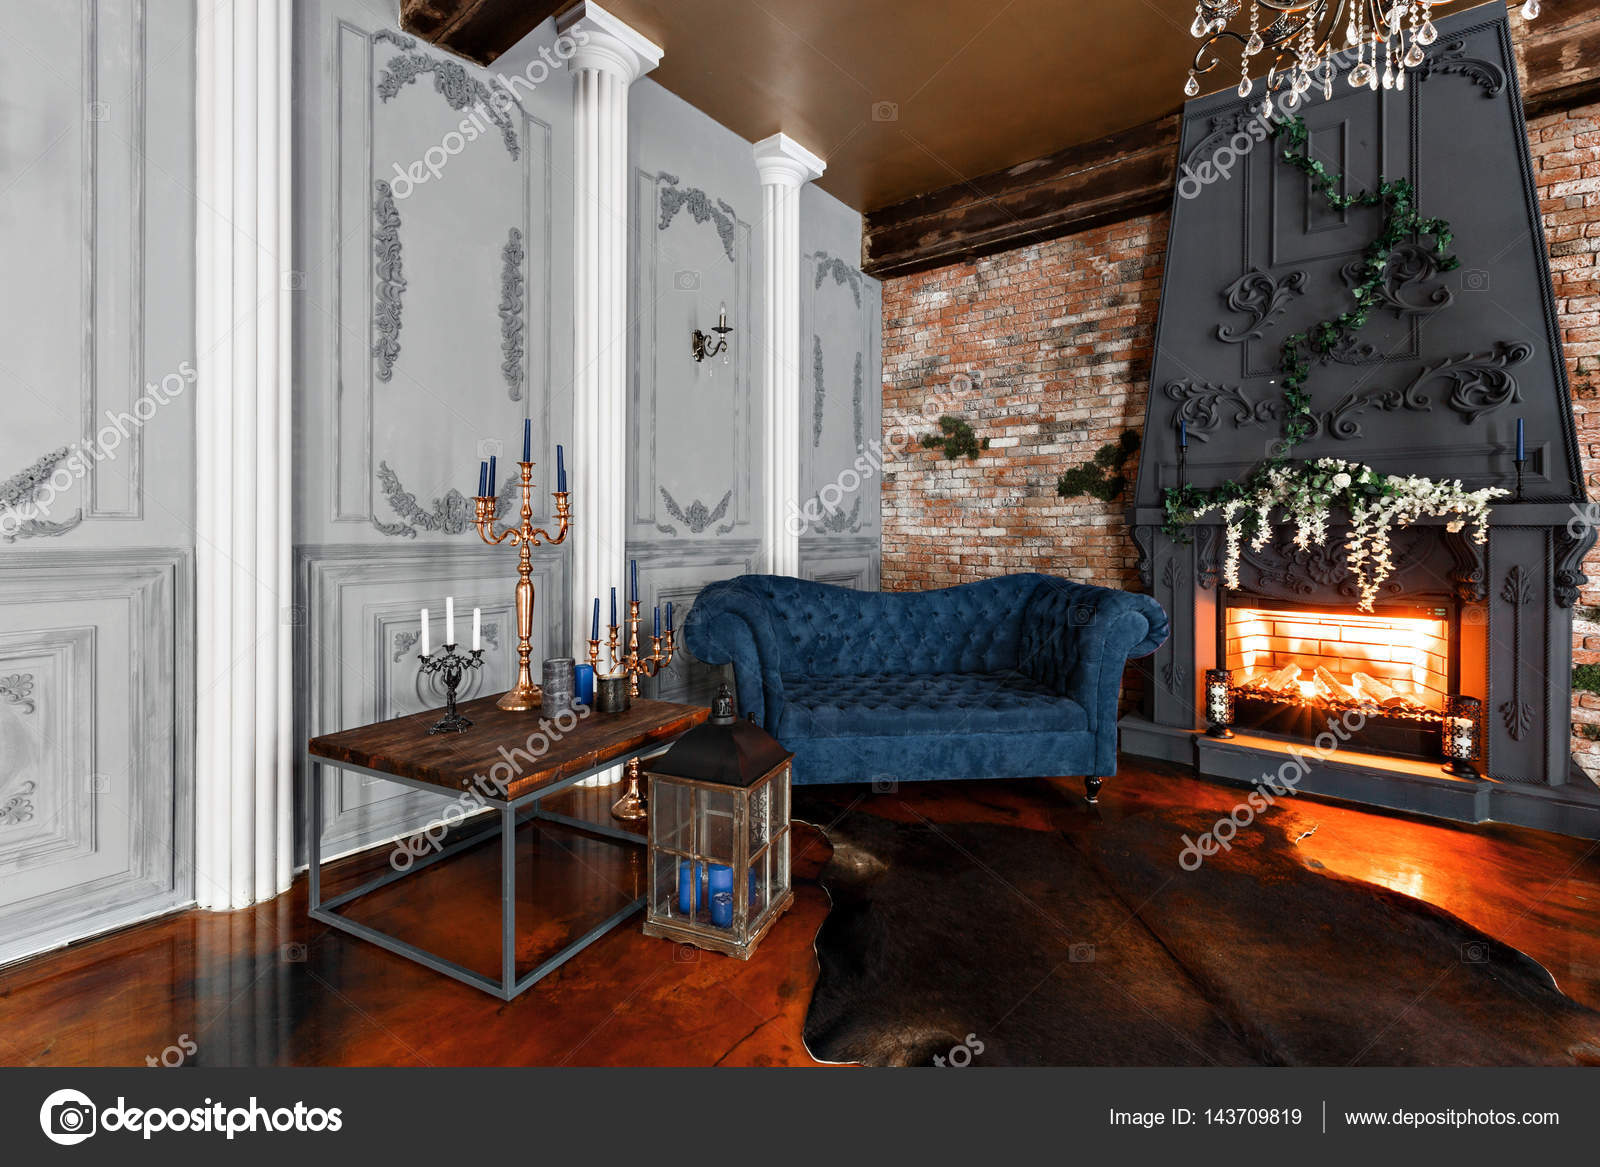 Interior With Fireplace Candles Skin Of Cows Brick Wall Large Window And A Metal Cell Of A